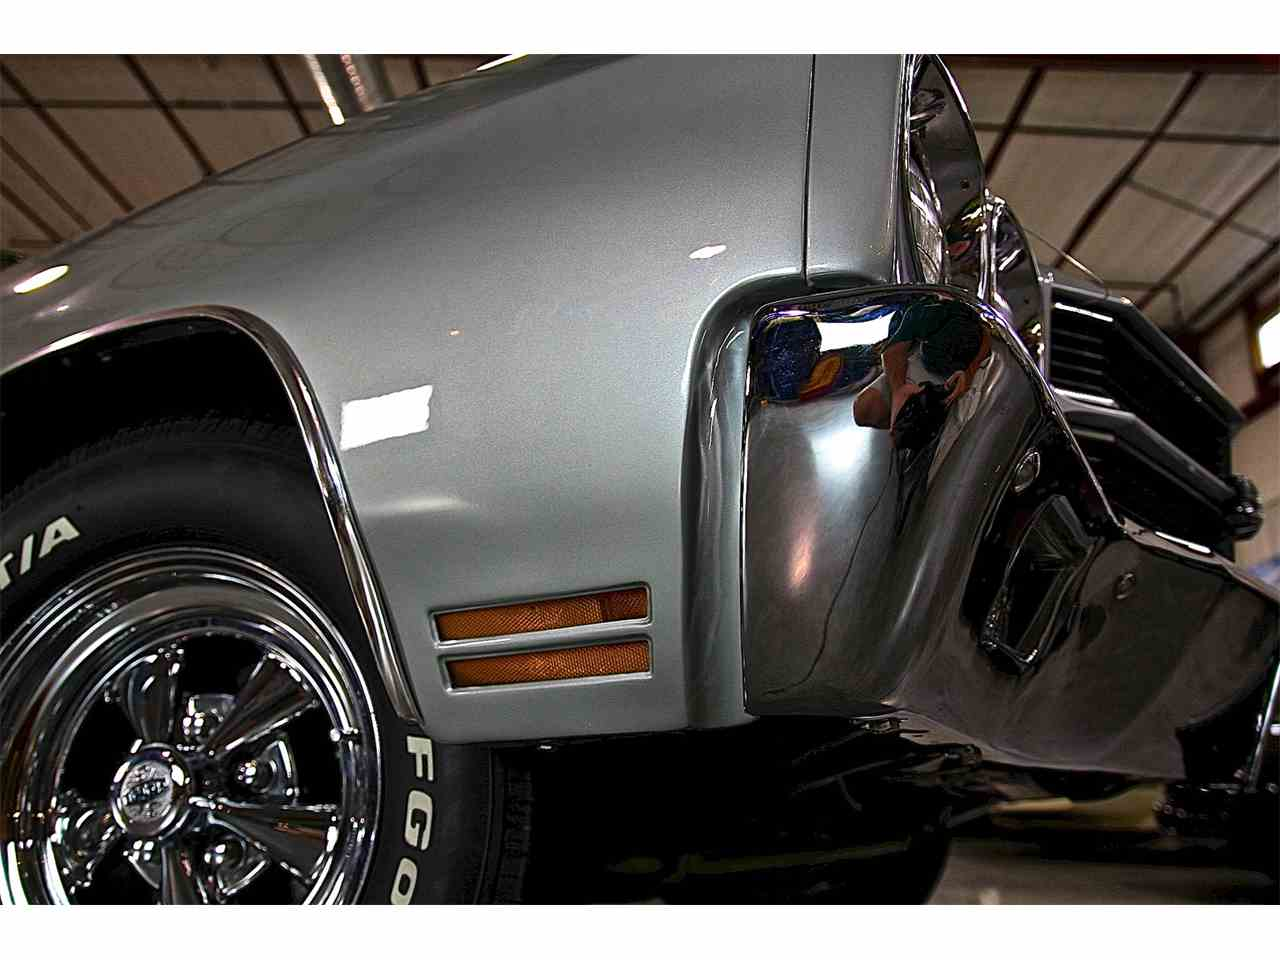 Large Picture of 1970 Chevrolet Chevelle SS located in Fort Lauderdale Florida - $92,000.00 - L41W